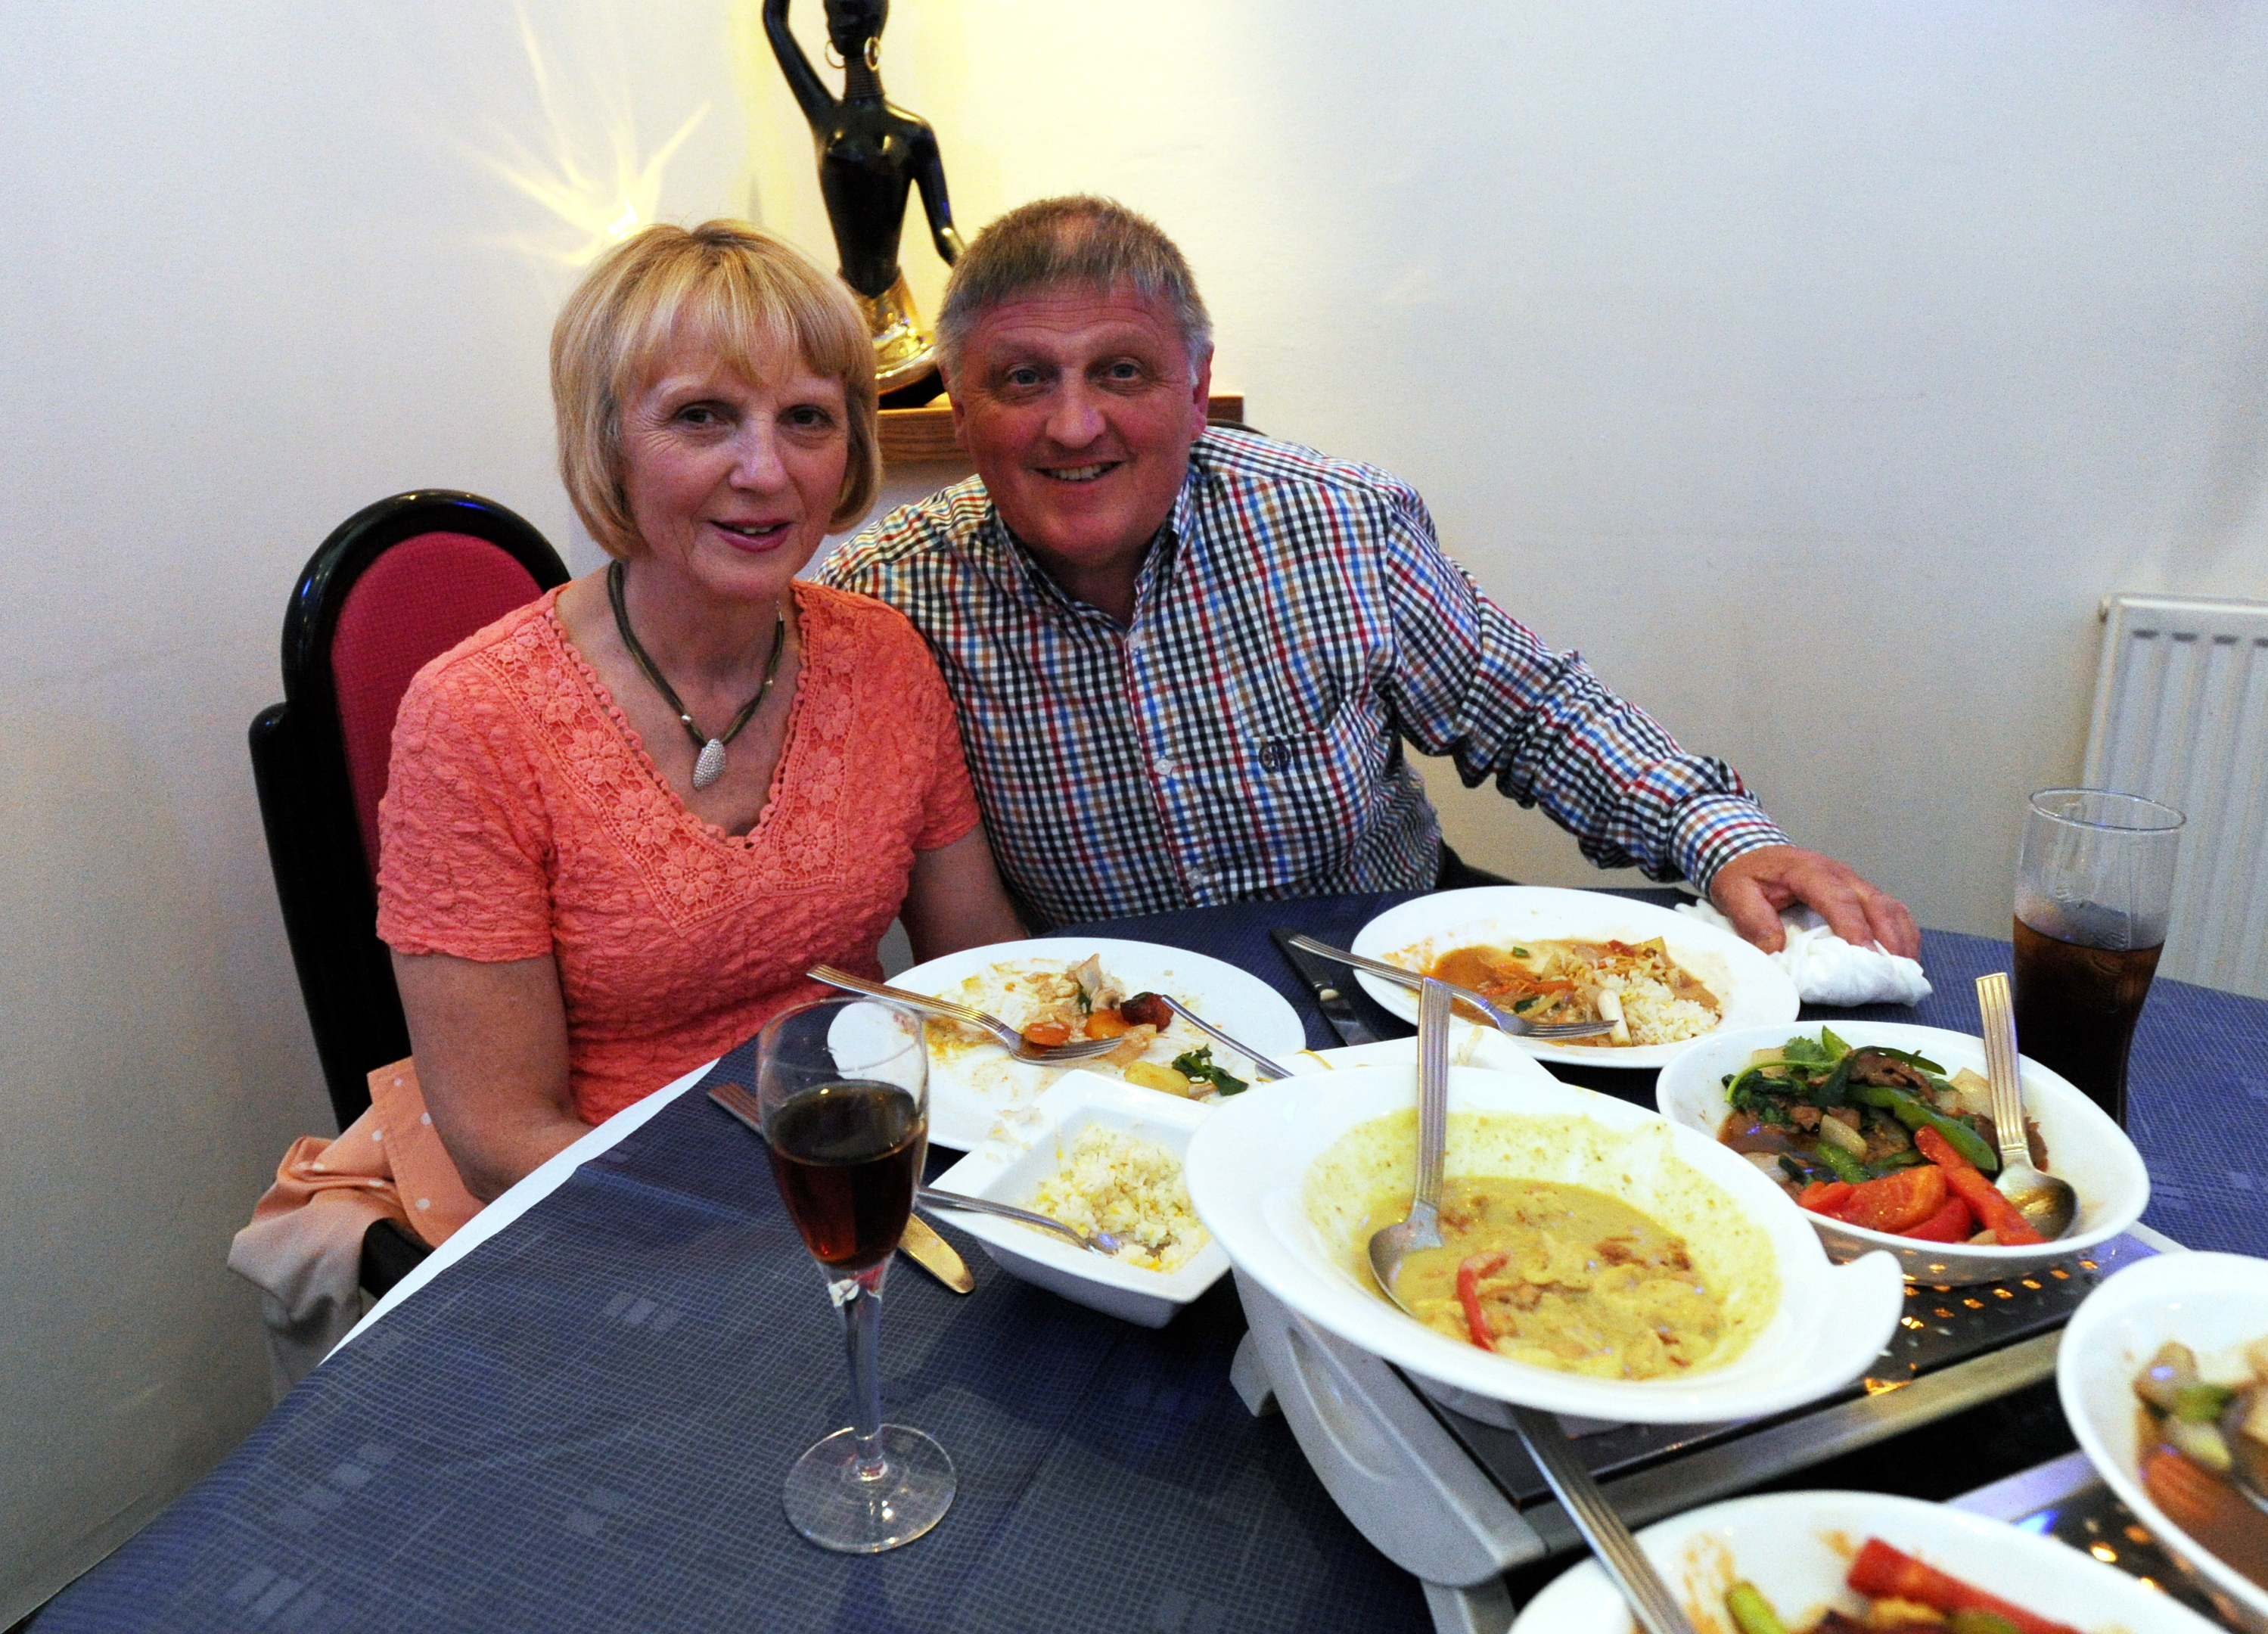 Diners June and Donald Christie mark their eighth wedding anniversary at the Royal Thai.